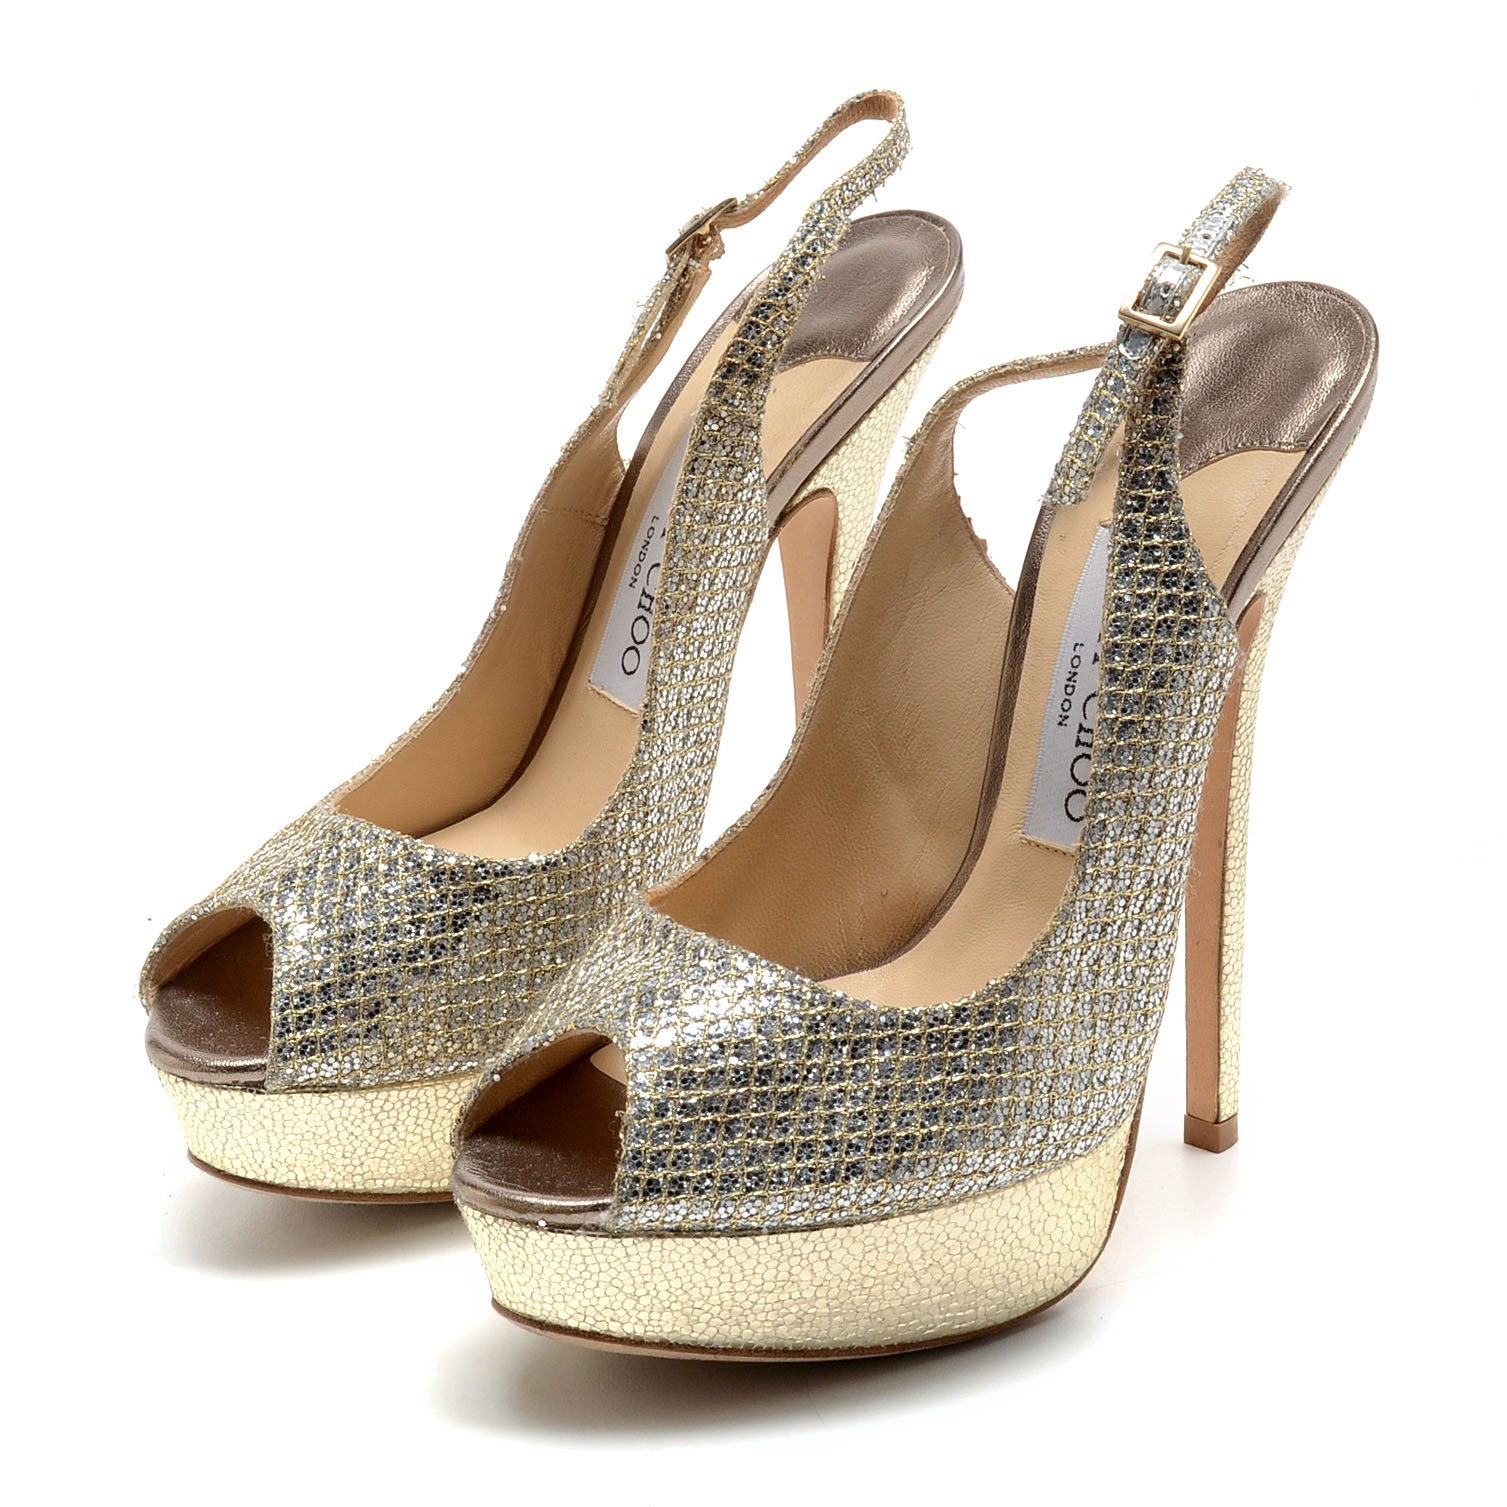 Jimmy Choo of London Silver Sequined Platform Stiletto Peep Toe Sling Backs